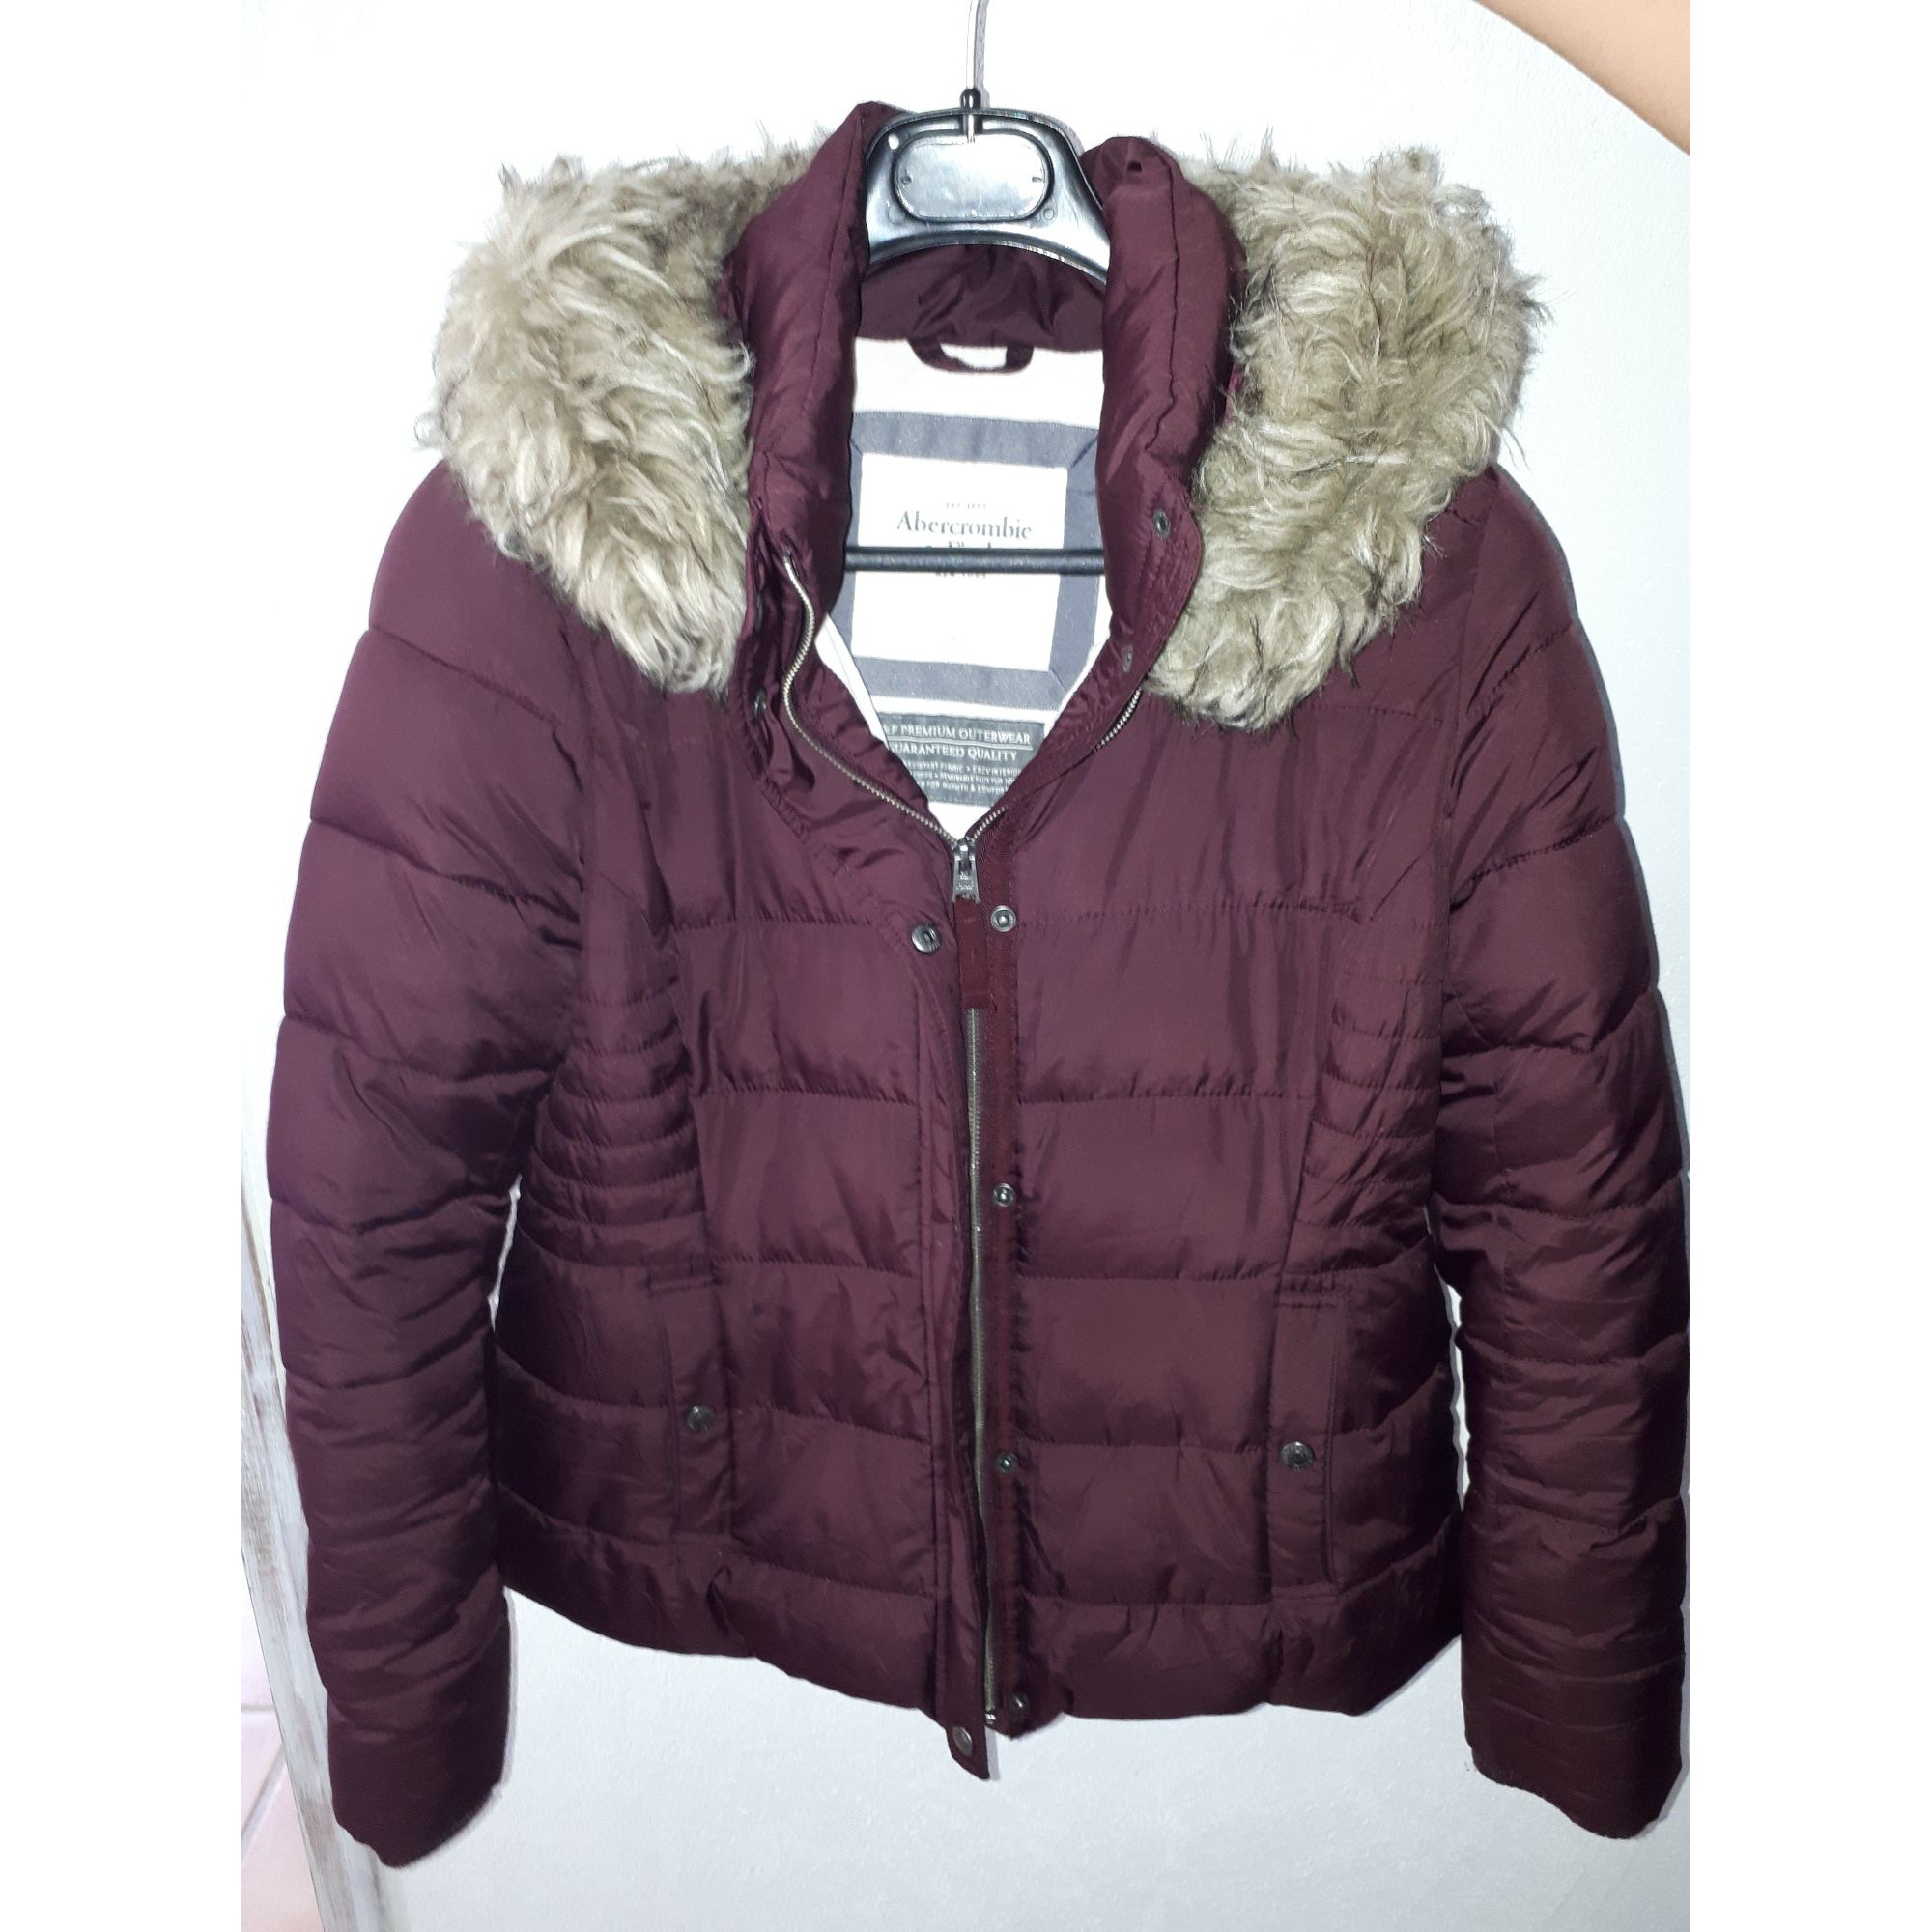 Doudoune femme taille s Abercrombie & Fitch